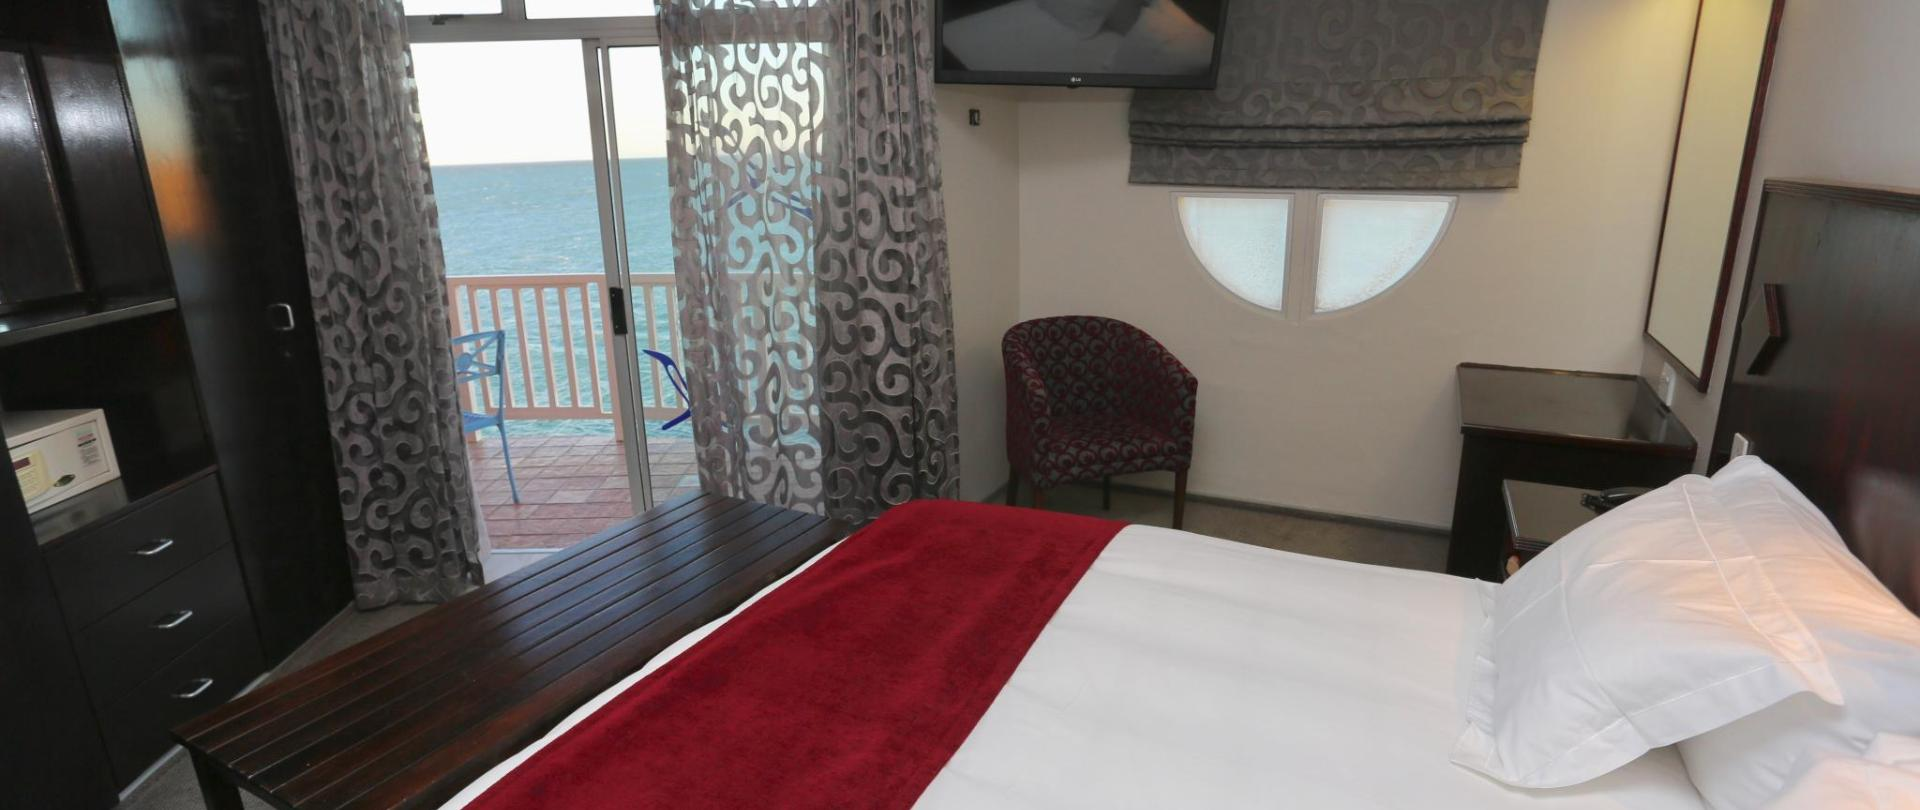 2018年豪華套房BEDROOM SEAVIEW.001.jpg